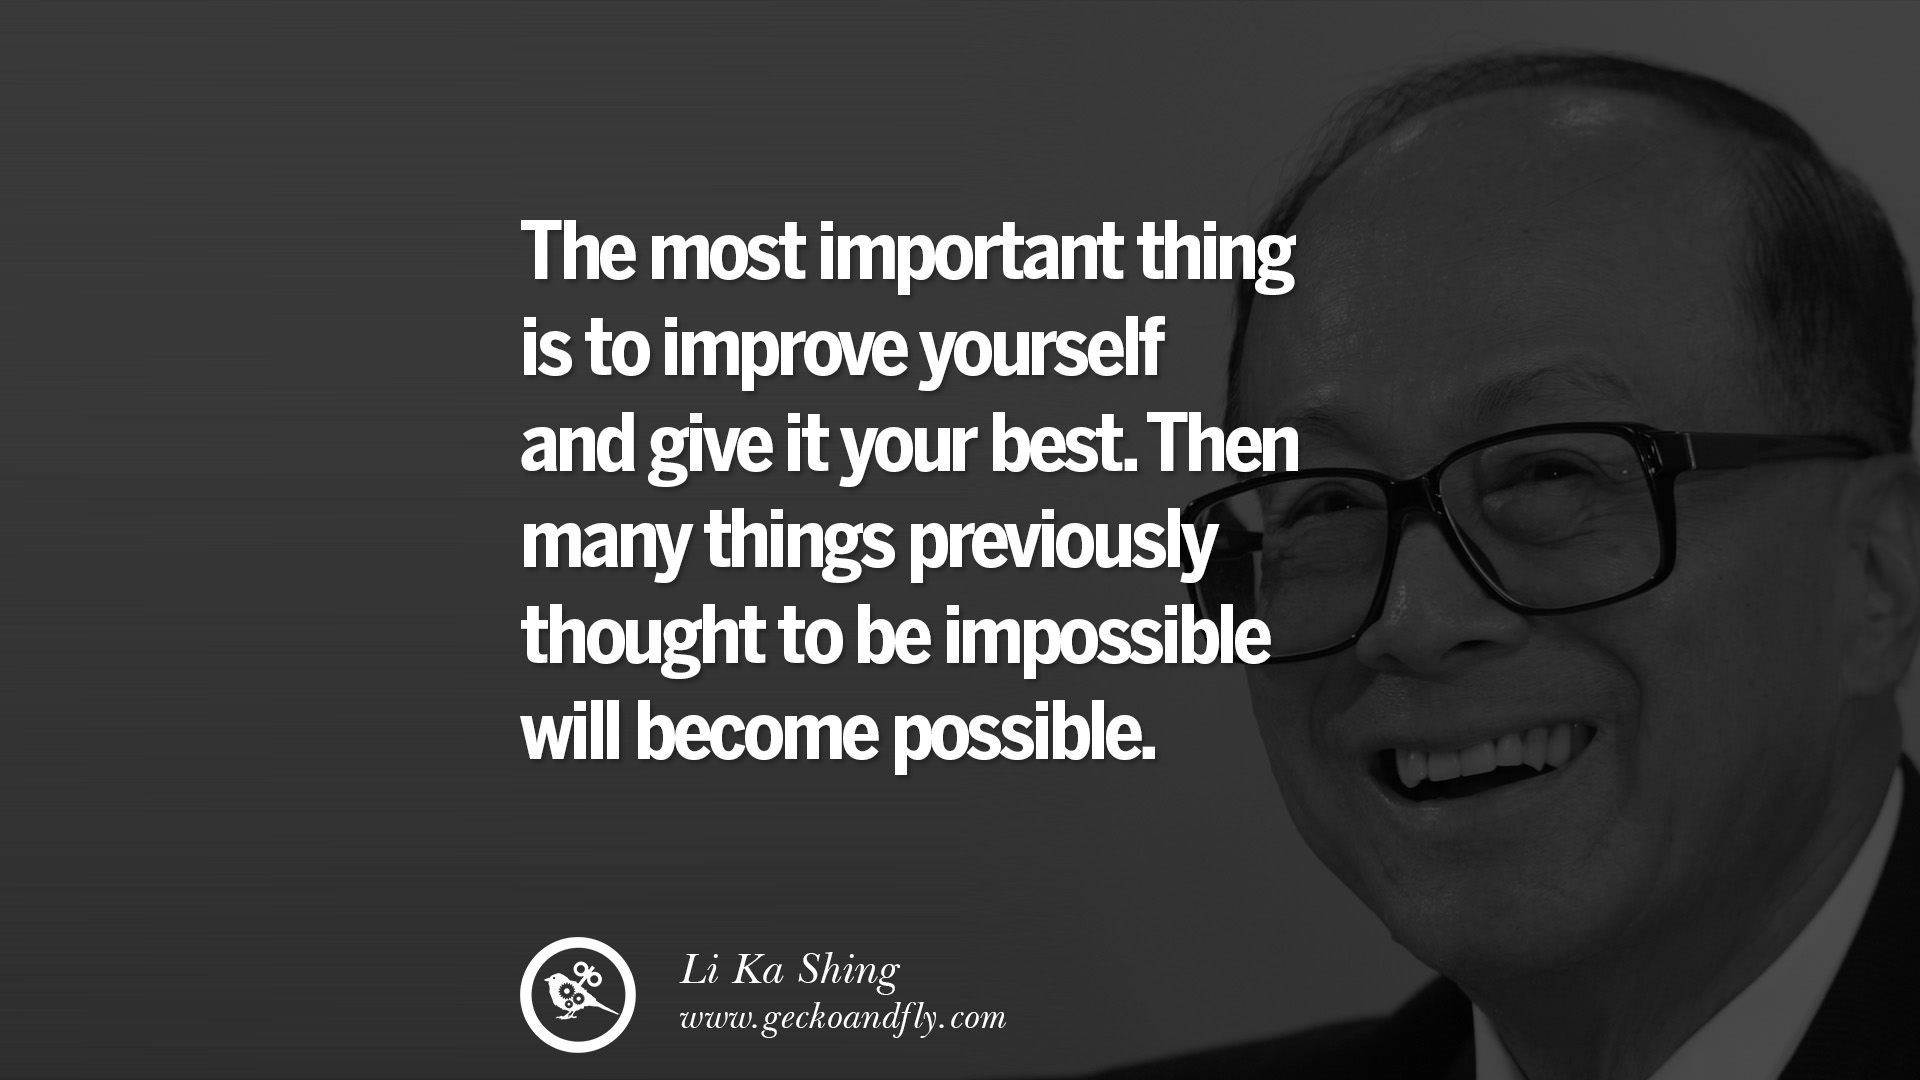 Famous Quotes About Life Lessons 12 Inspiring Li Ka Shing Life Lessons And Business Quotes